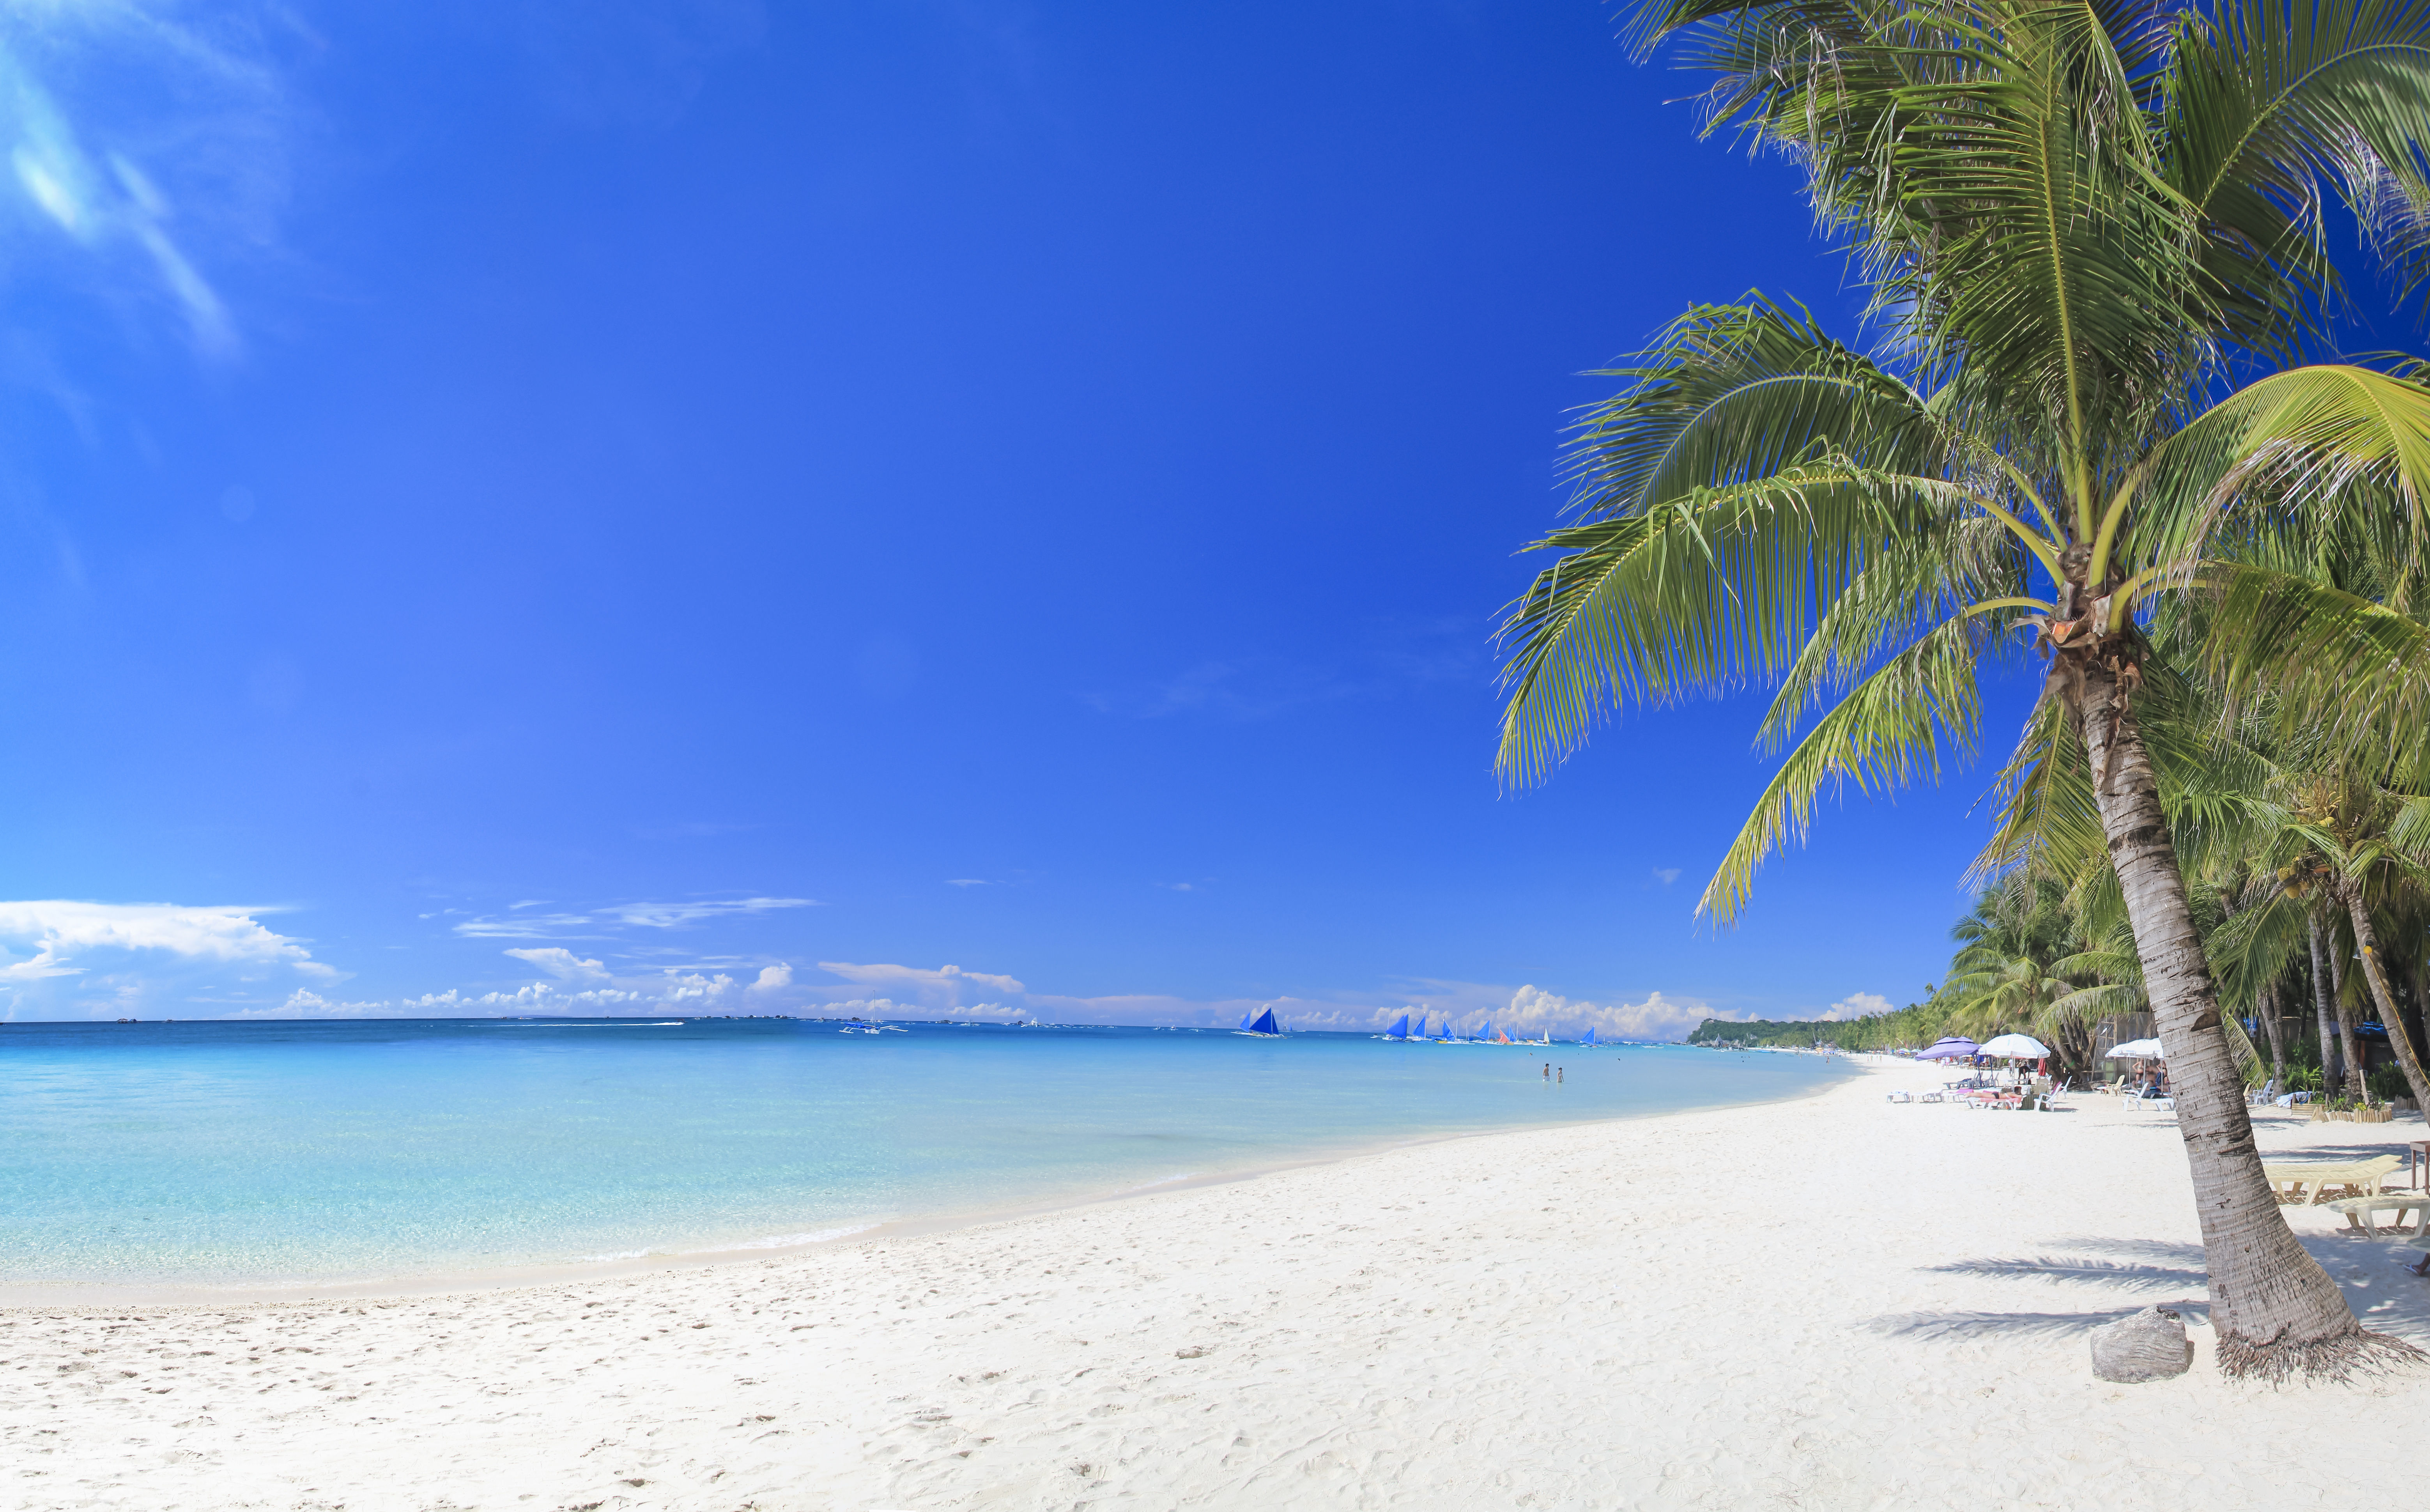 Stunning white sand beach with palm trees and crystal clear blue waters in Boracay, Philippines.